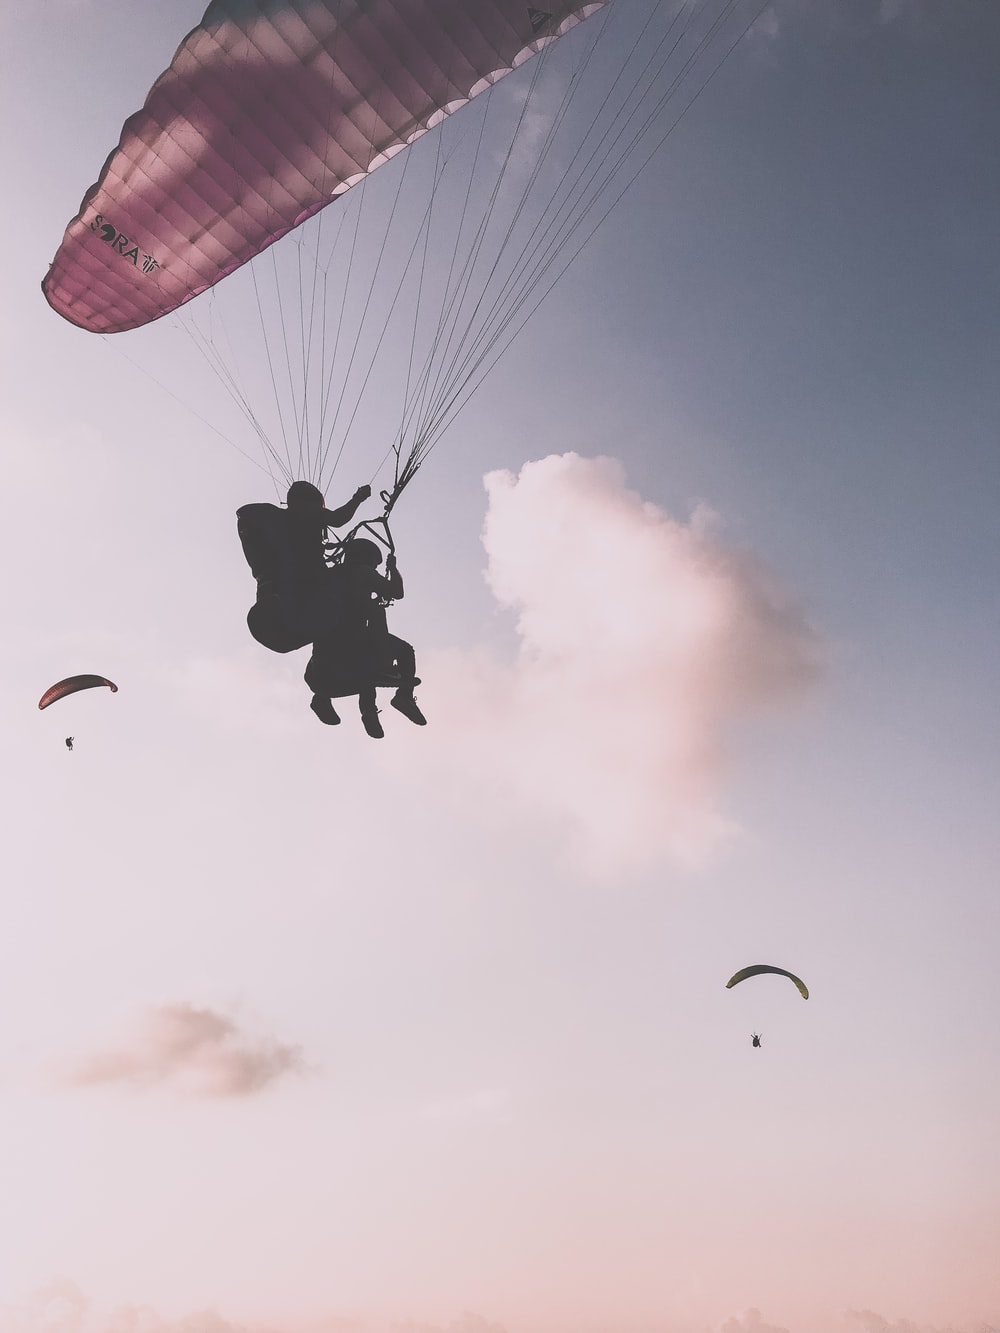 silhouette photography of two persons parachuting